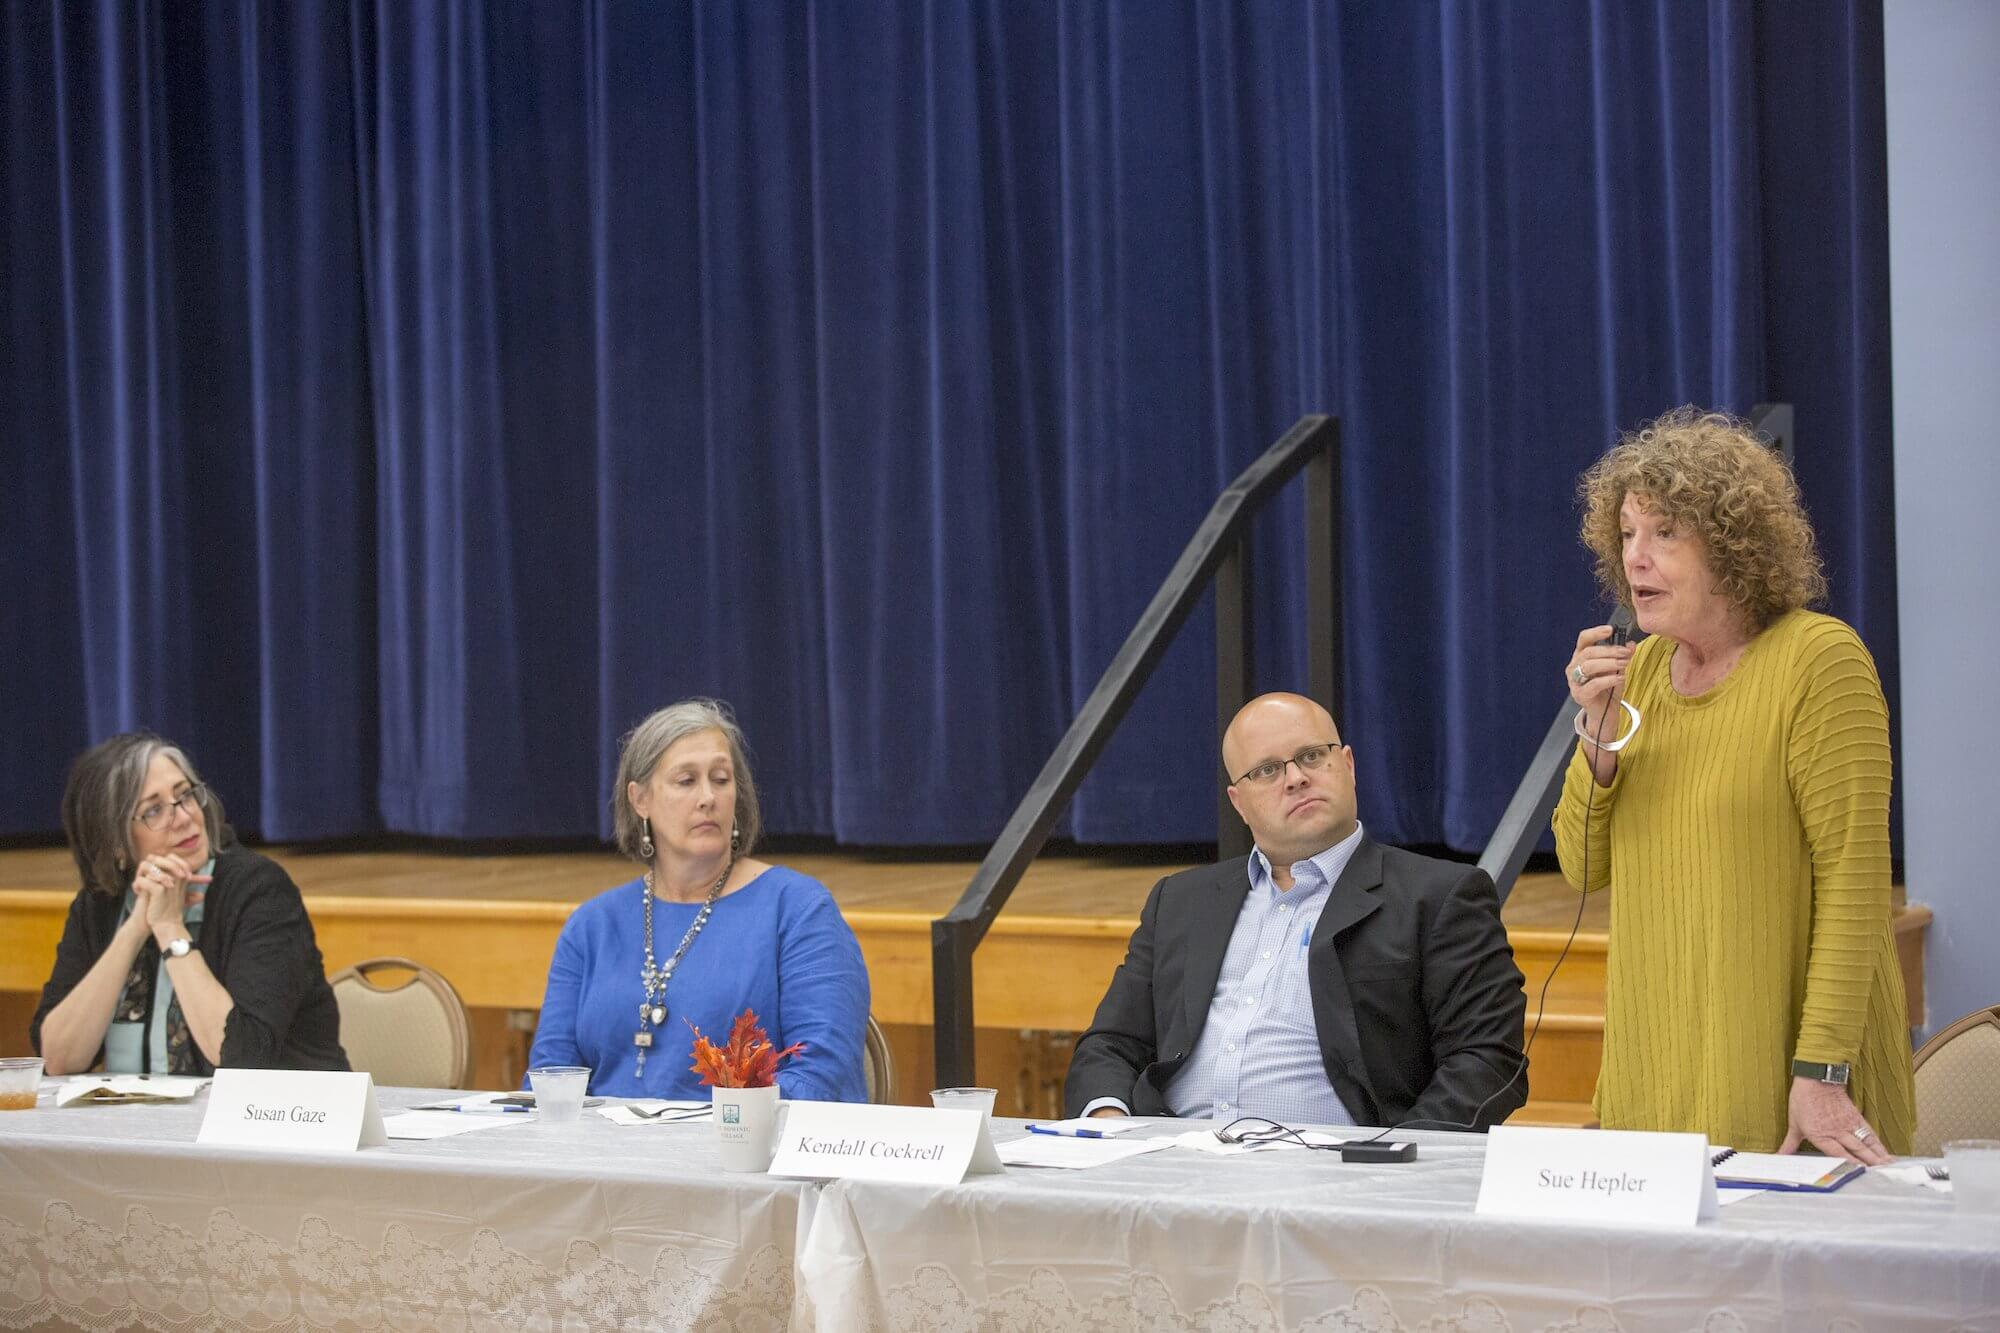 From left, Dyer, Susan Gaze, founder of Tender Transitions; Kendall Cockrell, an attorney with The Cockrell Law Firm; and Sue Hepler, Ph.D., a clinical social worker and geriatric psychologist.